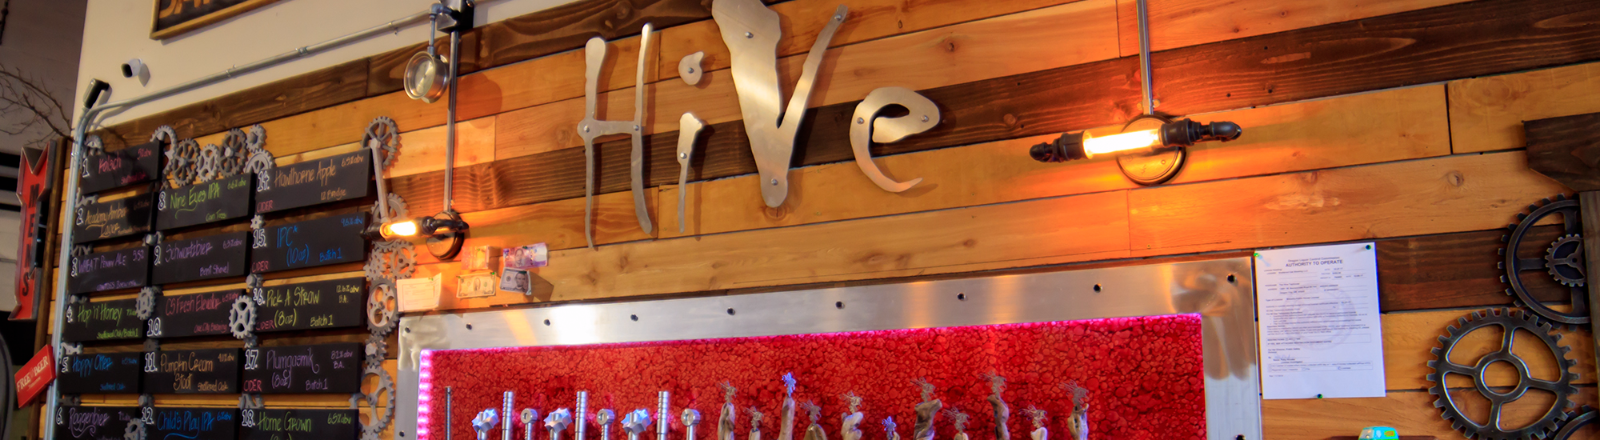 HiVe Taphouse's wall of cider and beer taps and menu board with HiVe logo done in polished metal letters above the taps